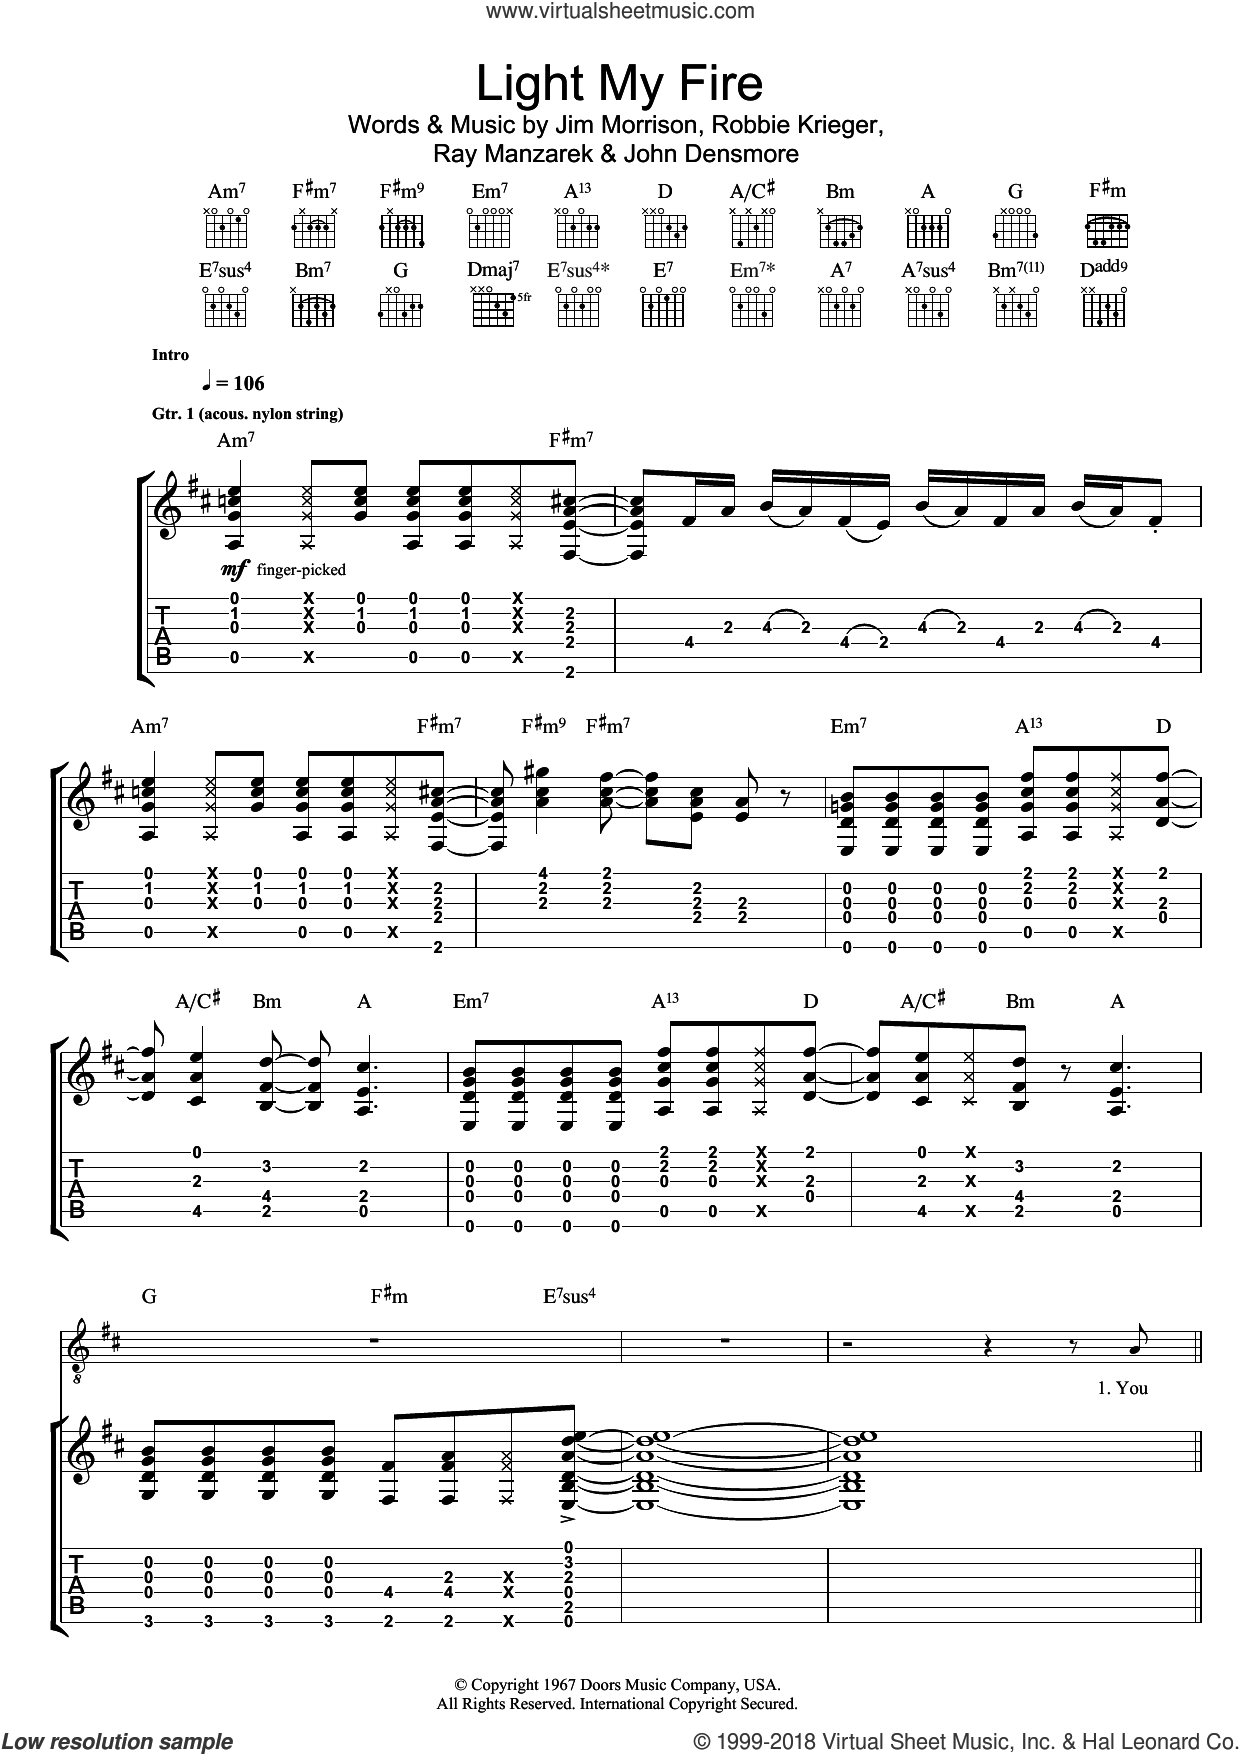 Feliciano Light My Fire Sheet Music For Guitar Tablature